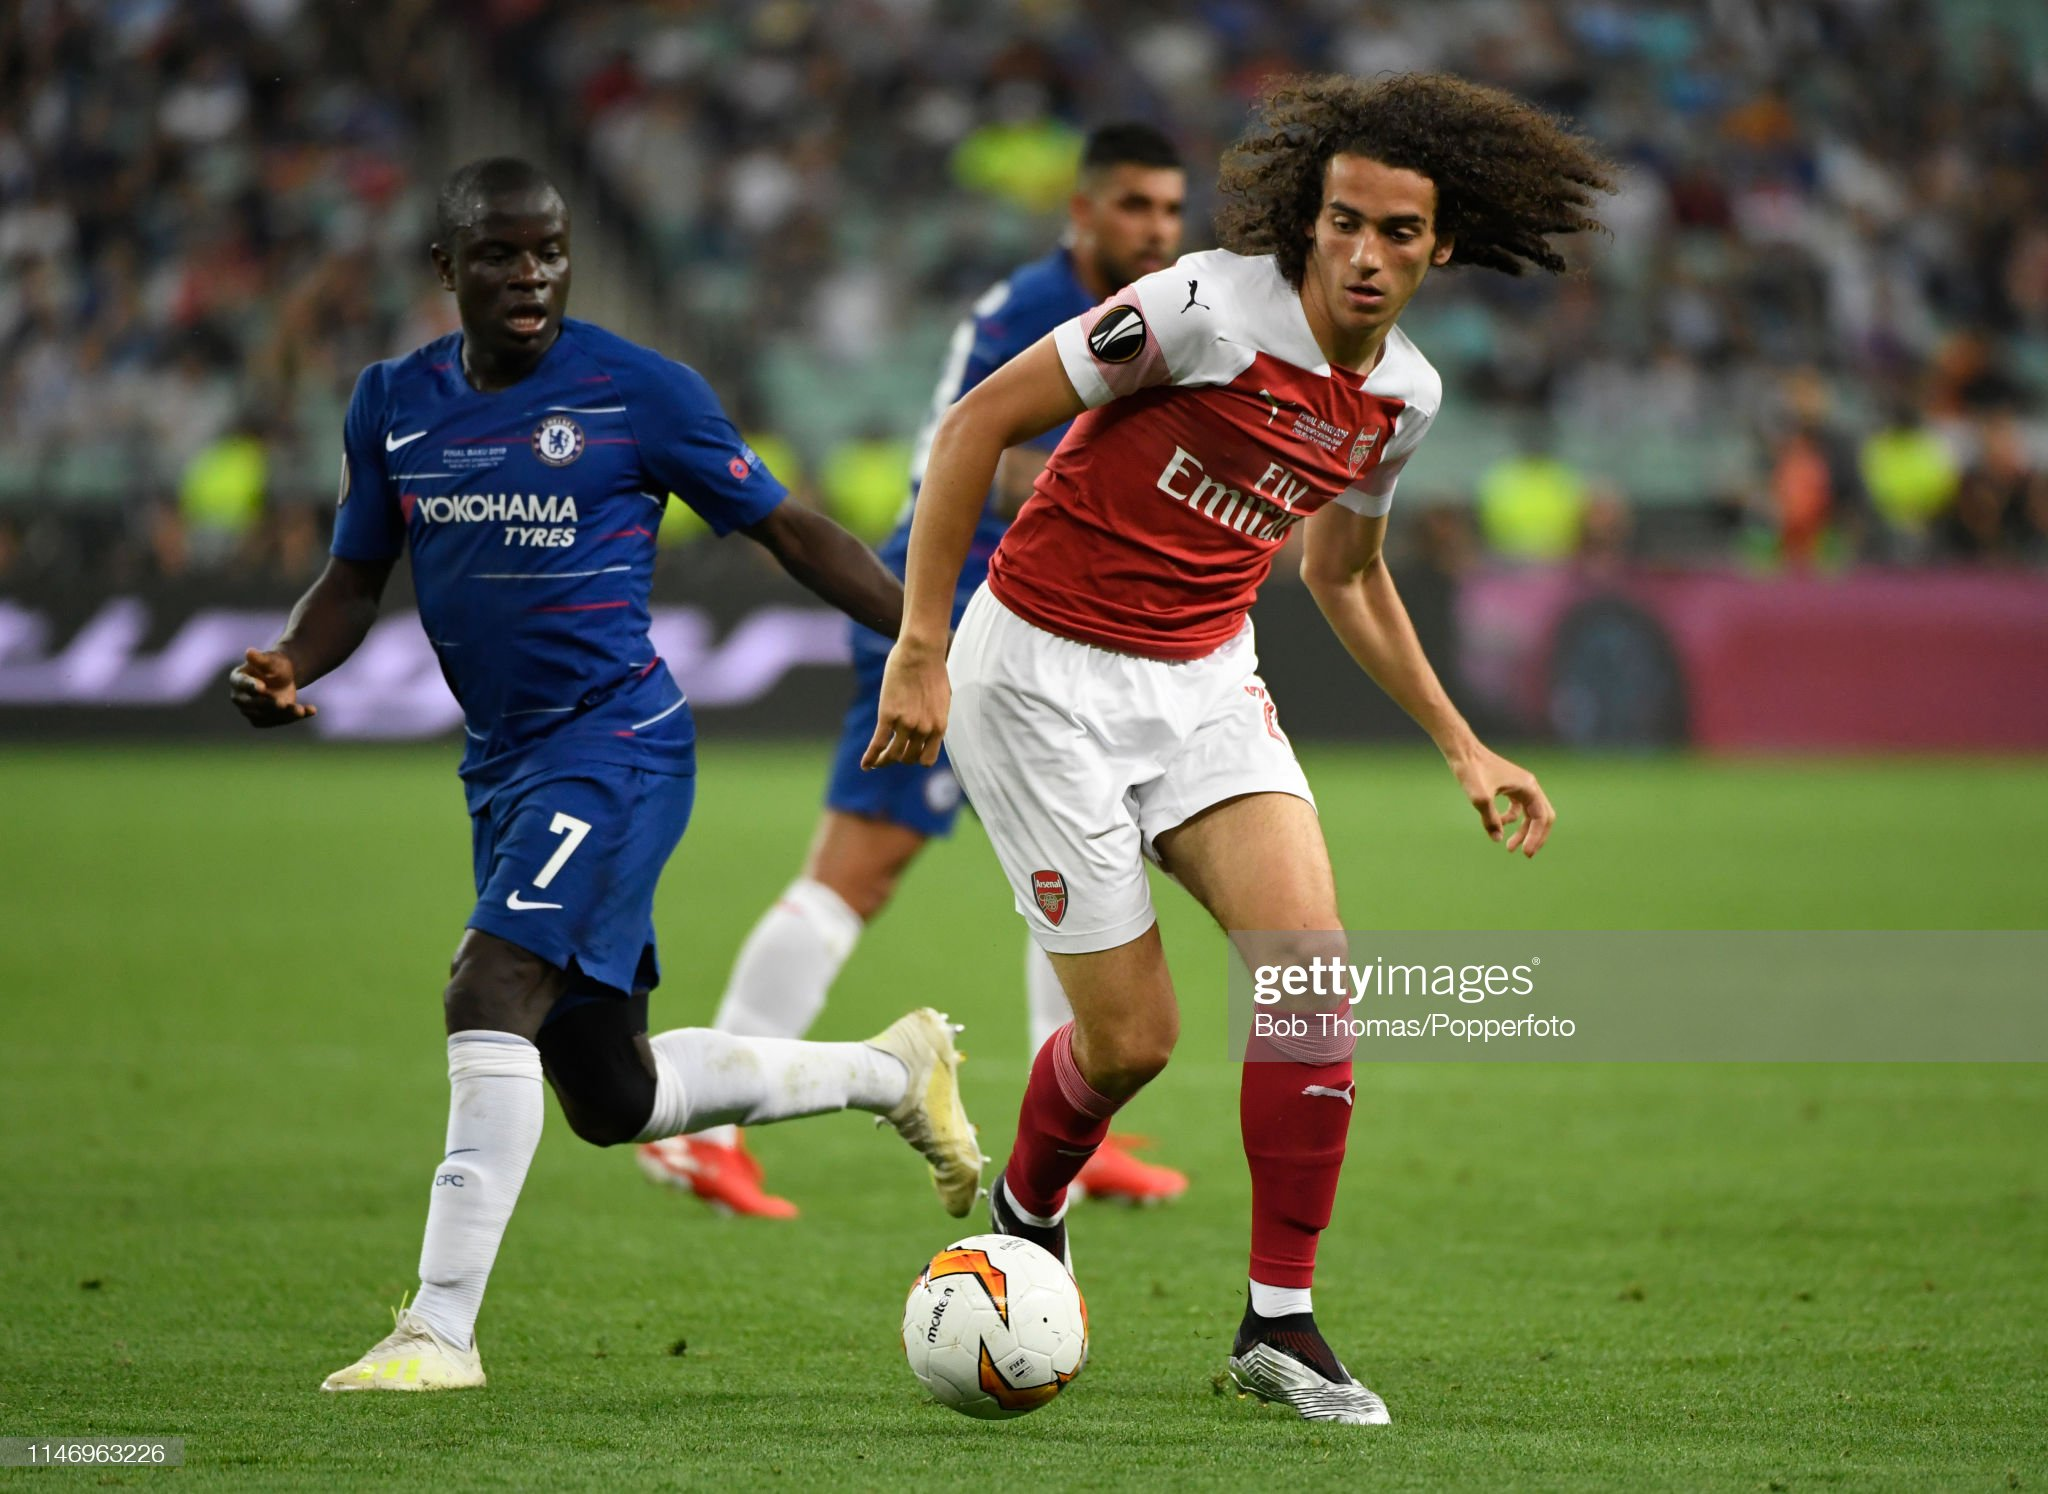 Arsenal v Chelsea preview, prediction and odds